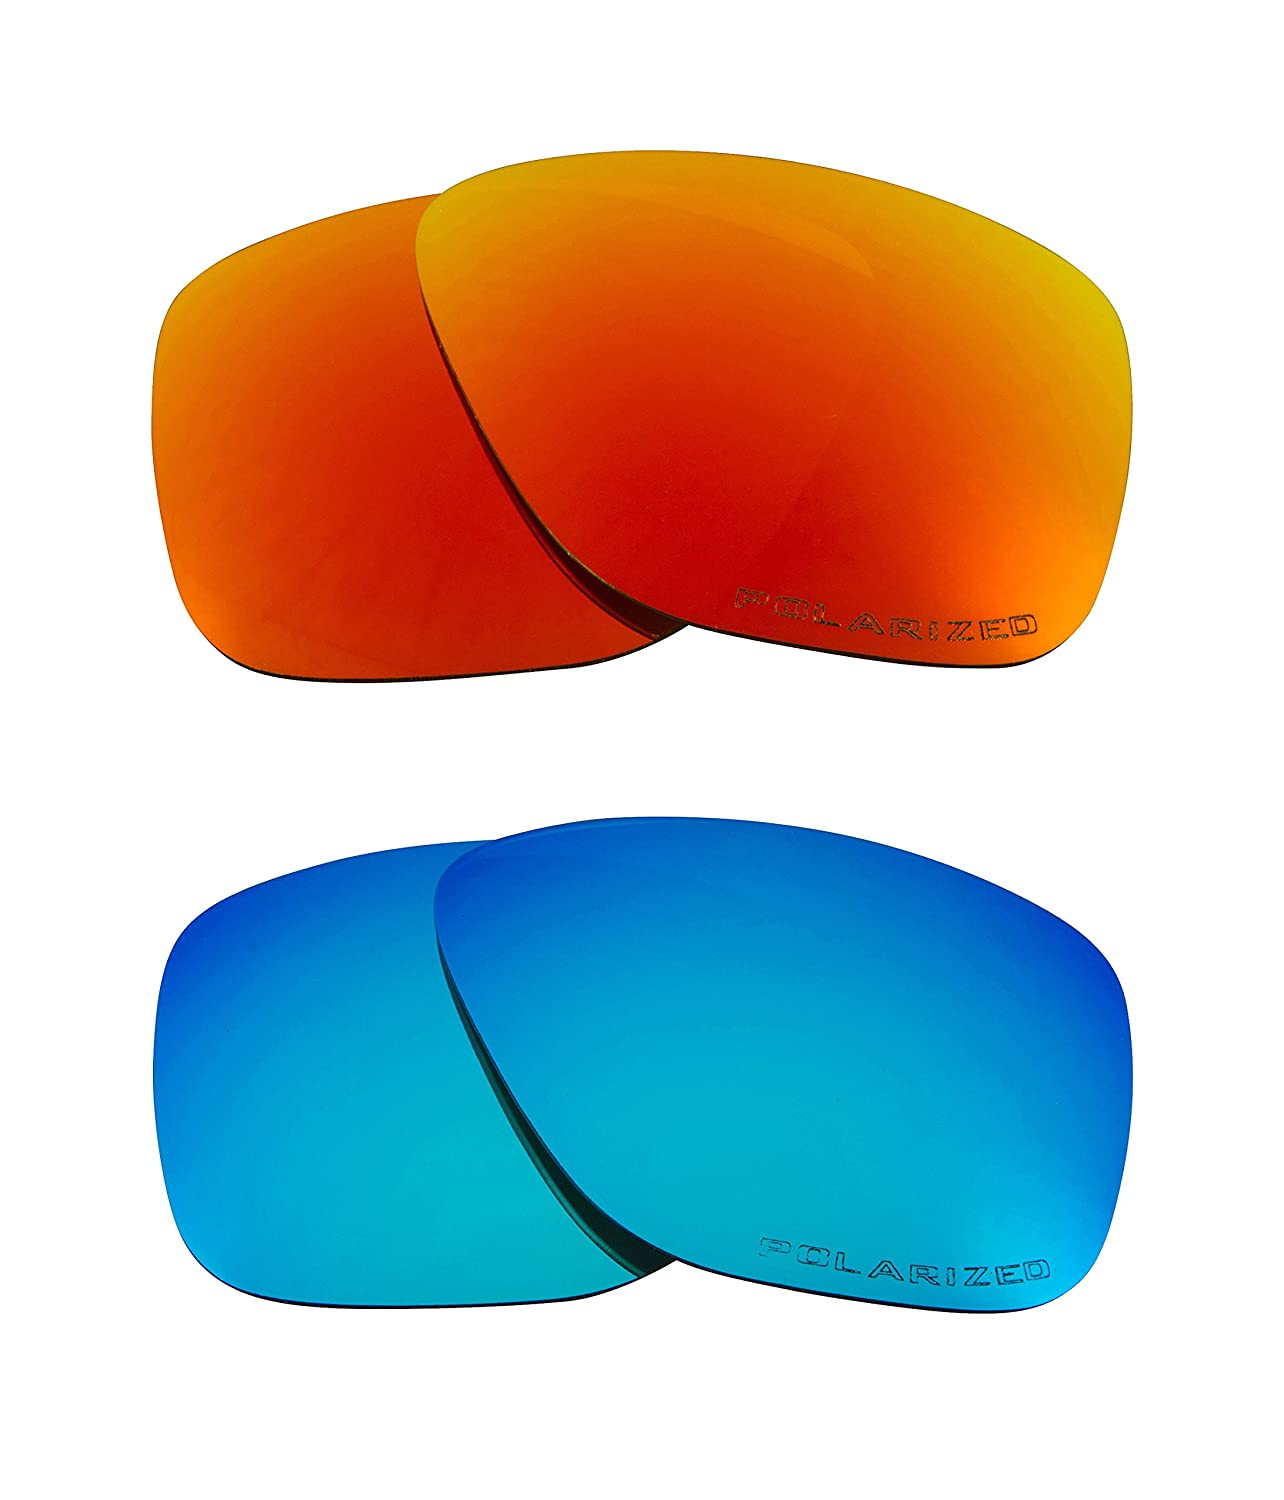 1ef09e1d3e BREADBOX Replacement Lenses Polarized Blue   Red by SEEK fits OAKLEY  Sunglasses at Amazon Men s Clothing store